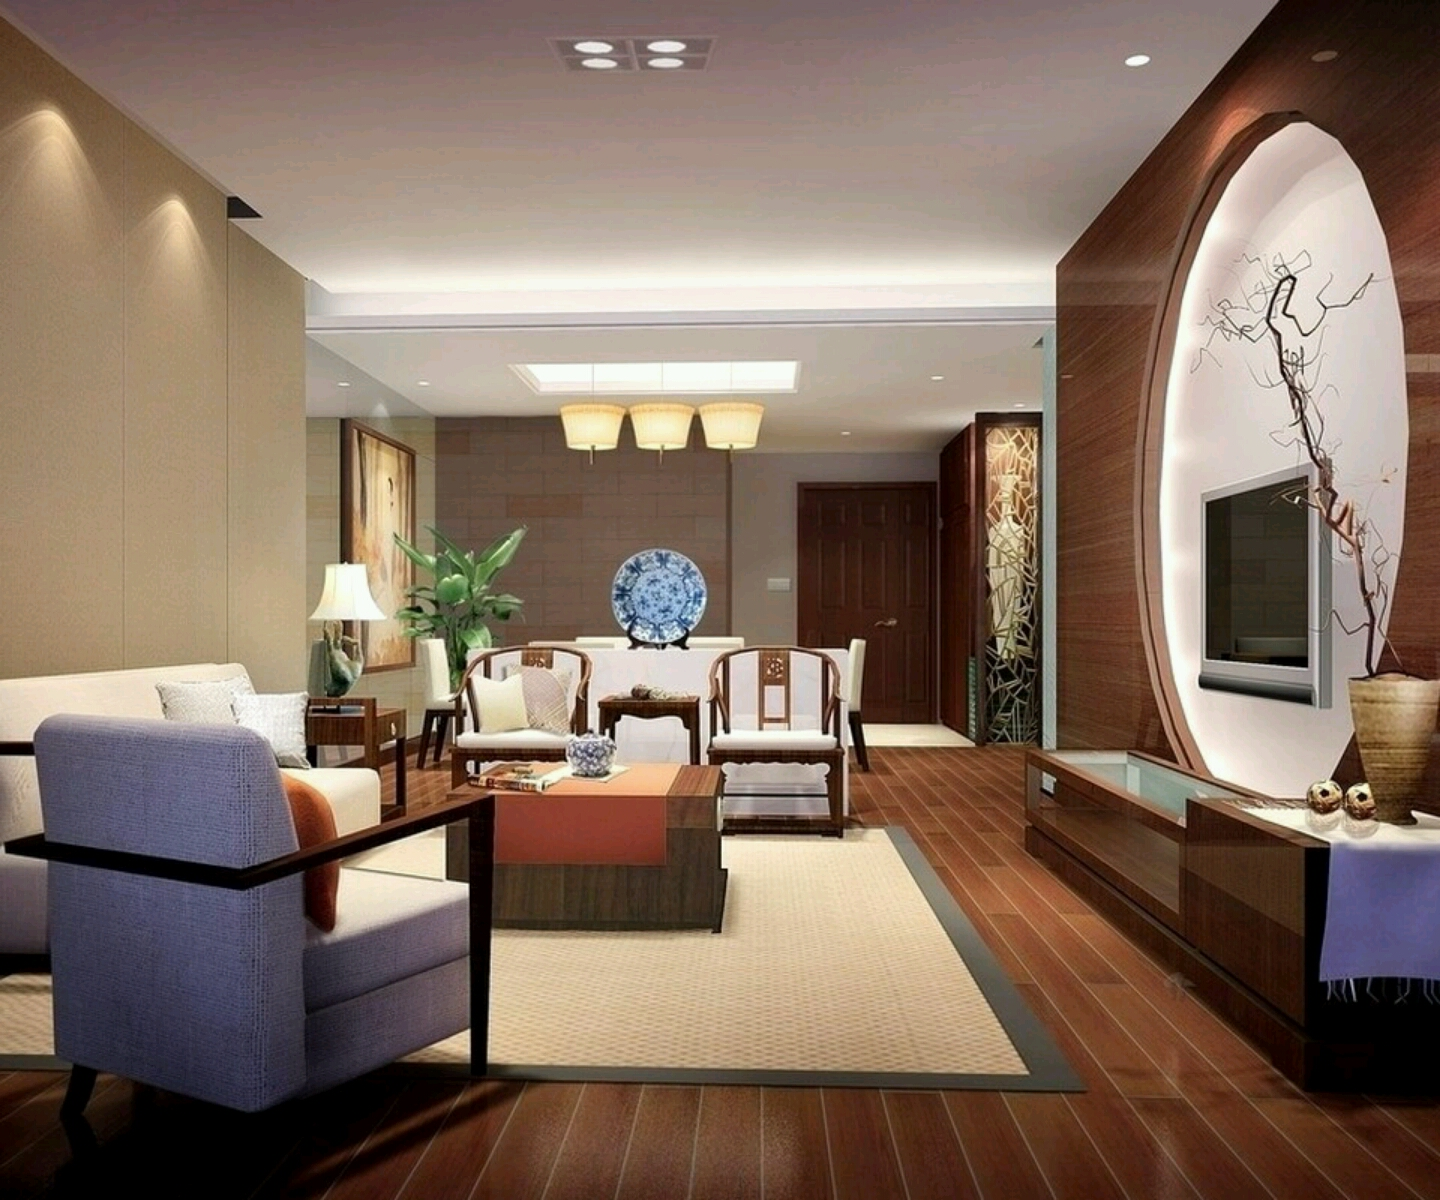 Luxury homes interior decoration living room designs ideas for Living room home decor ideas